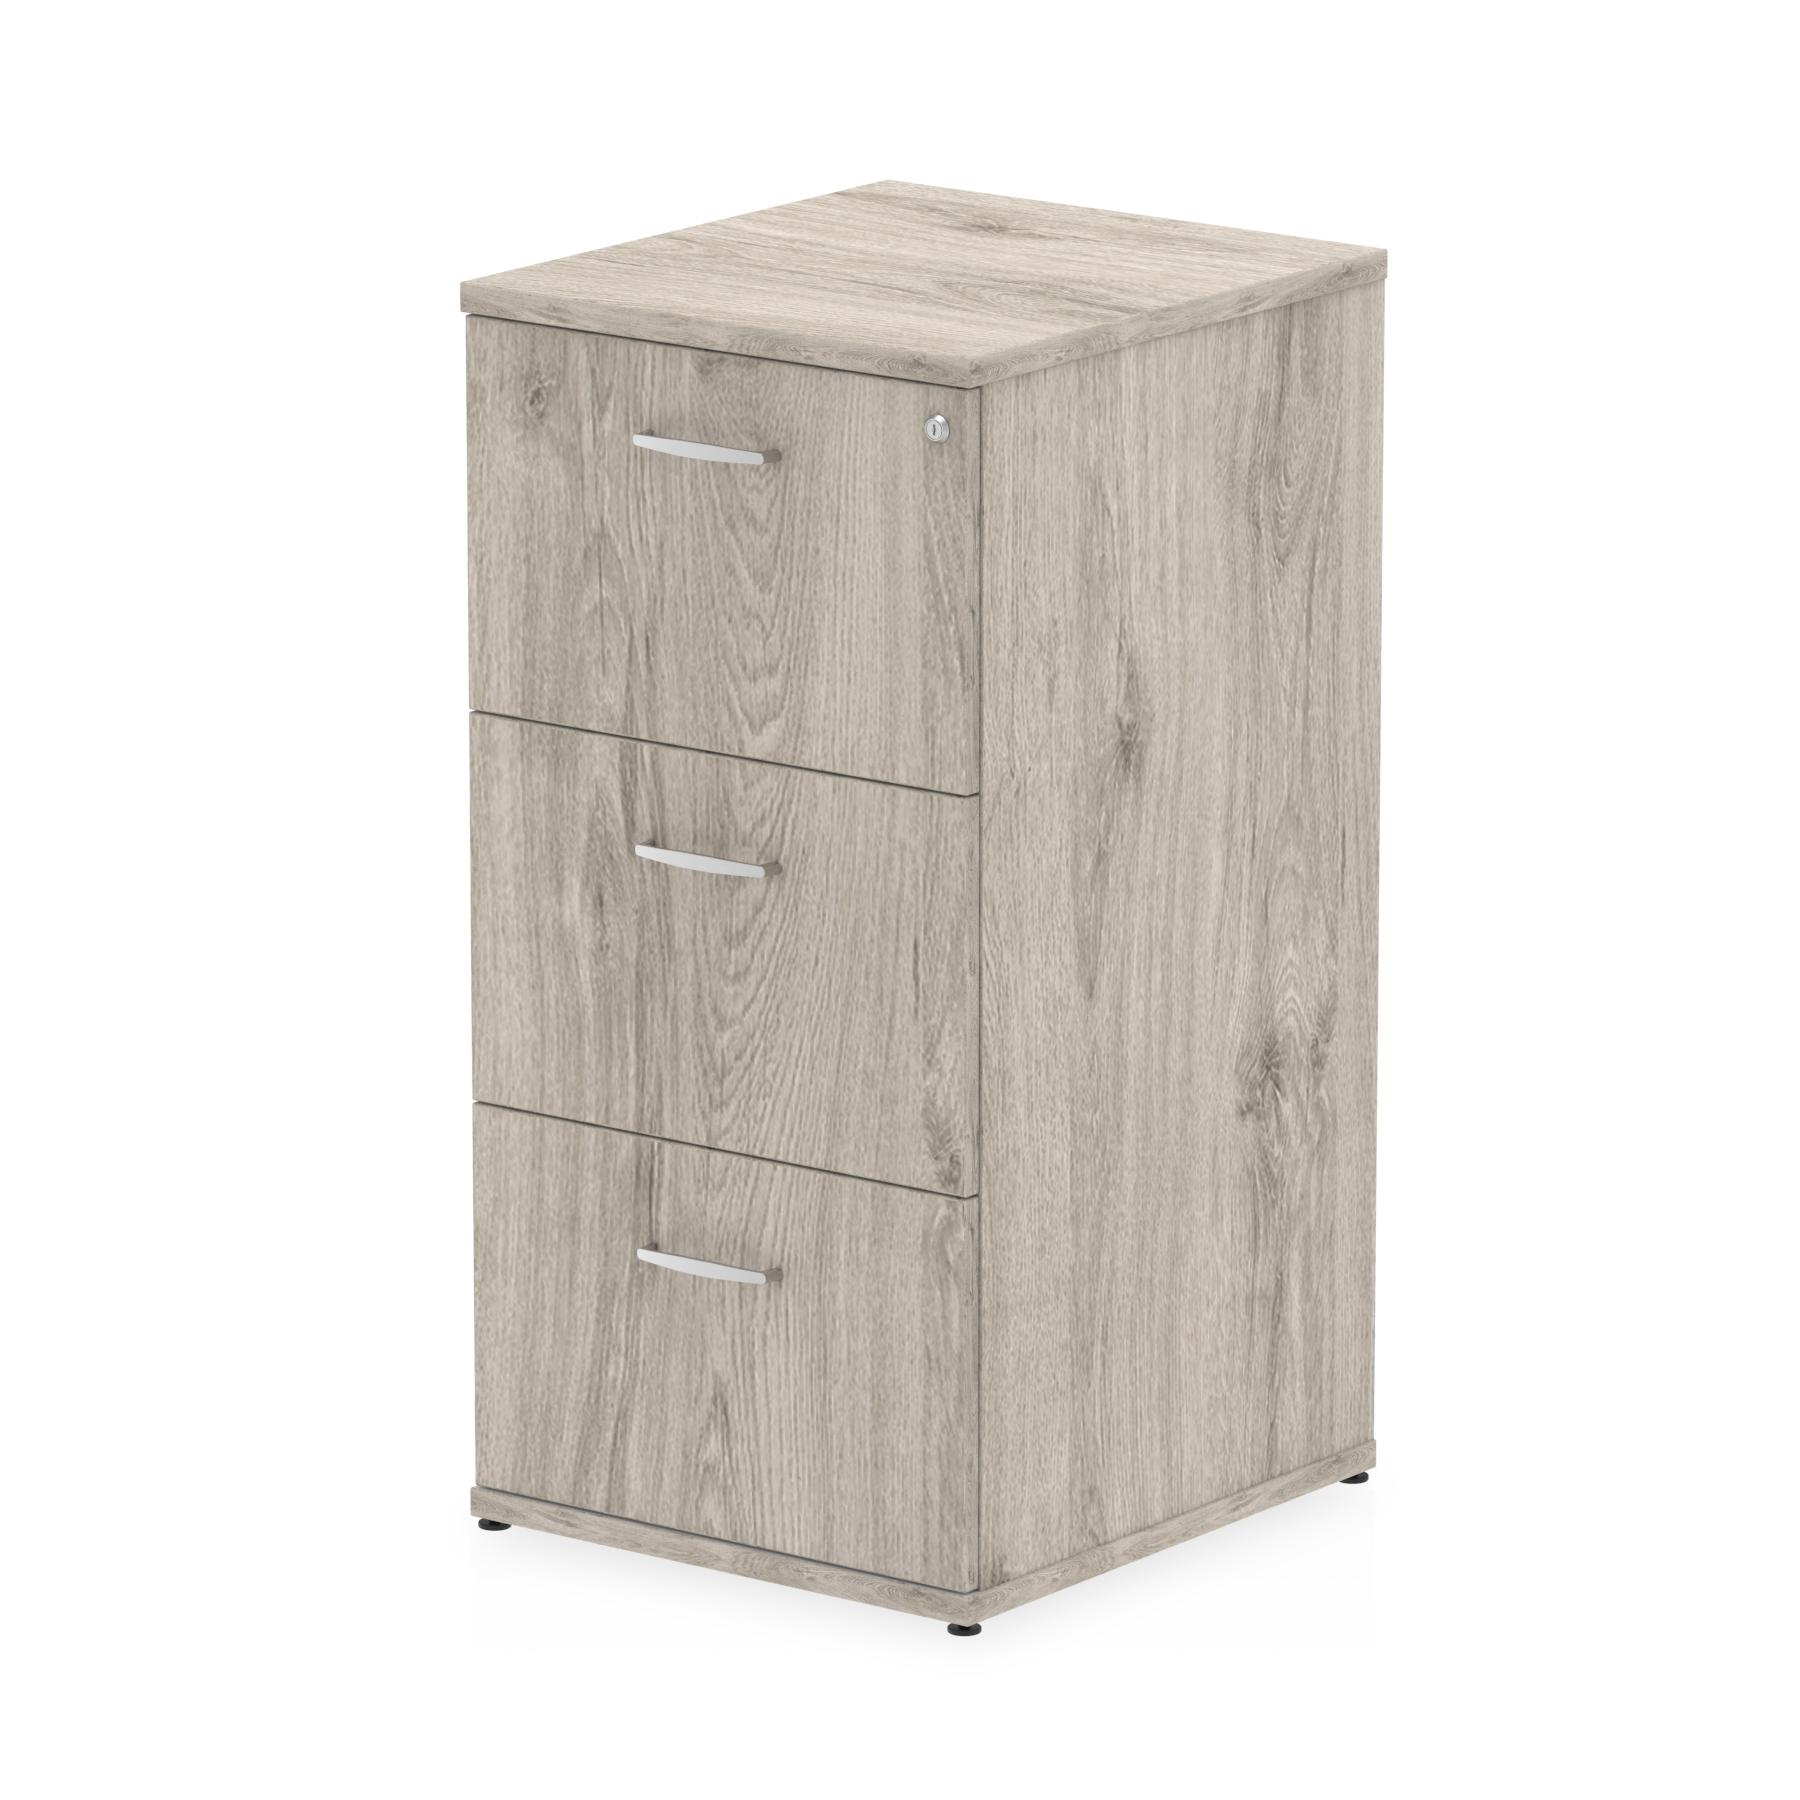 Filing cabinets or accesories Trexus 3 Drawer Filing Cabinet 500x600x1125mm Grey Oak Ref I003242